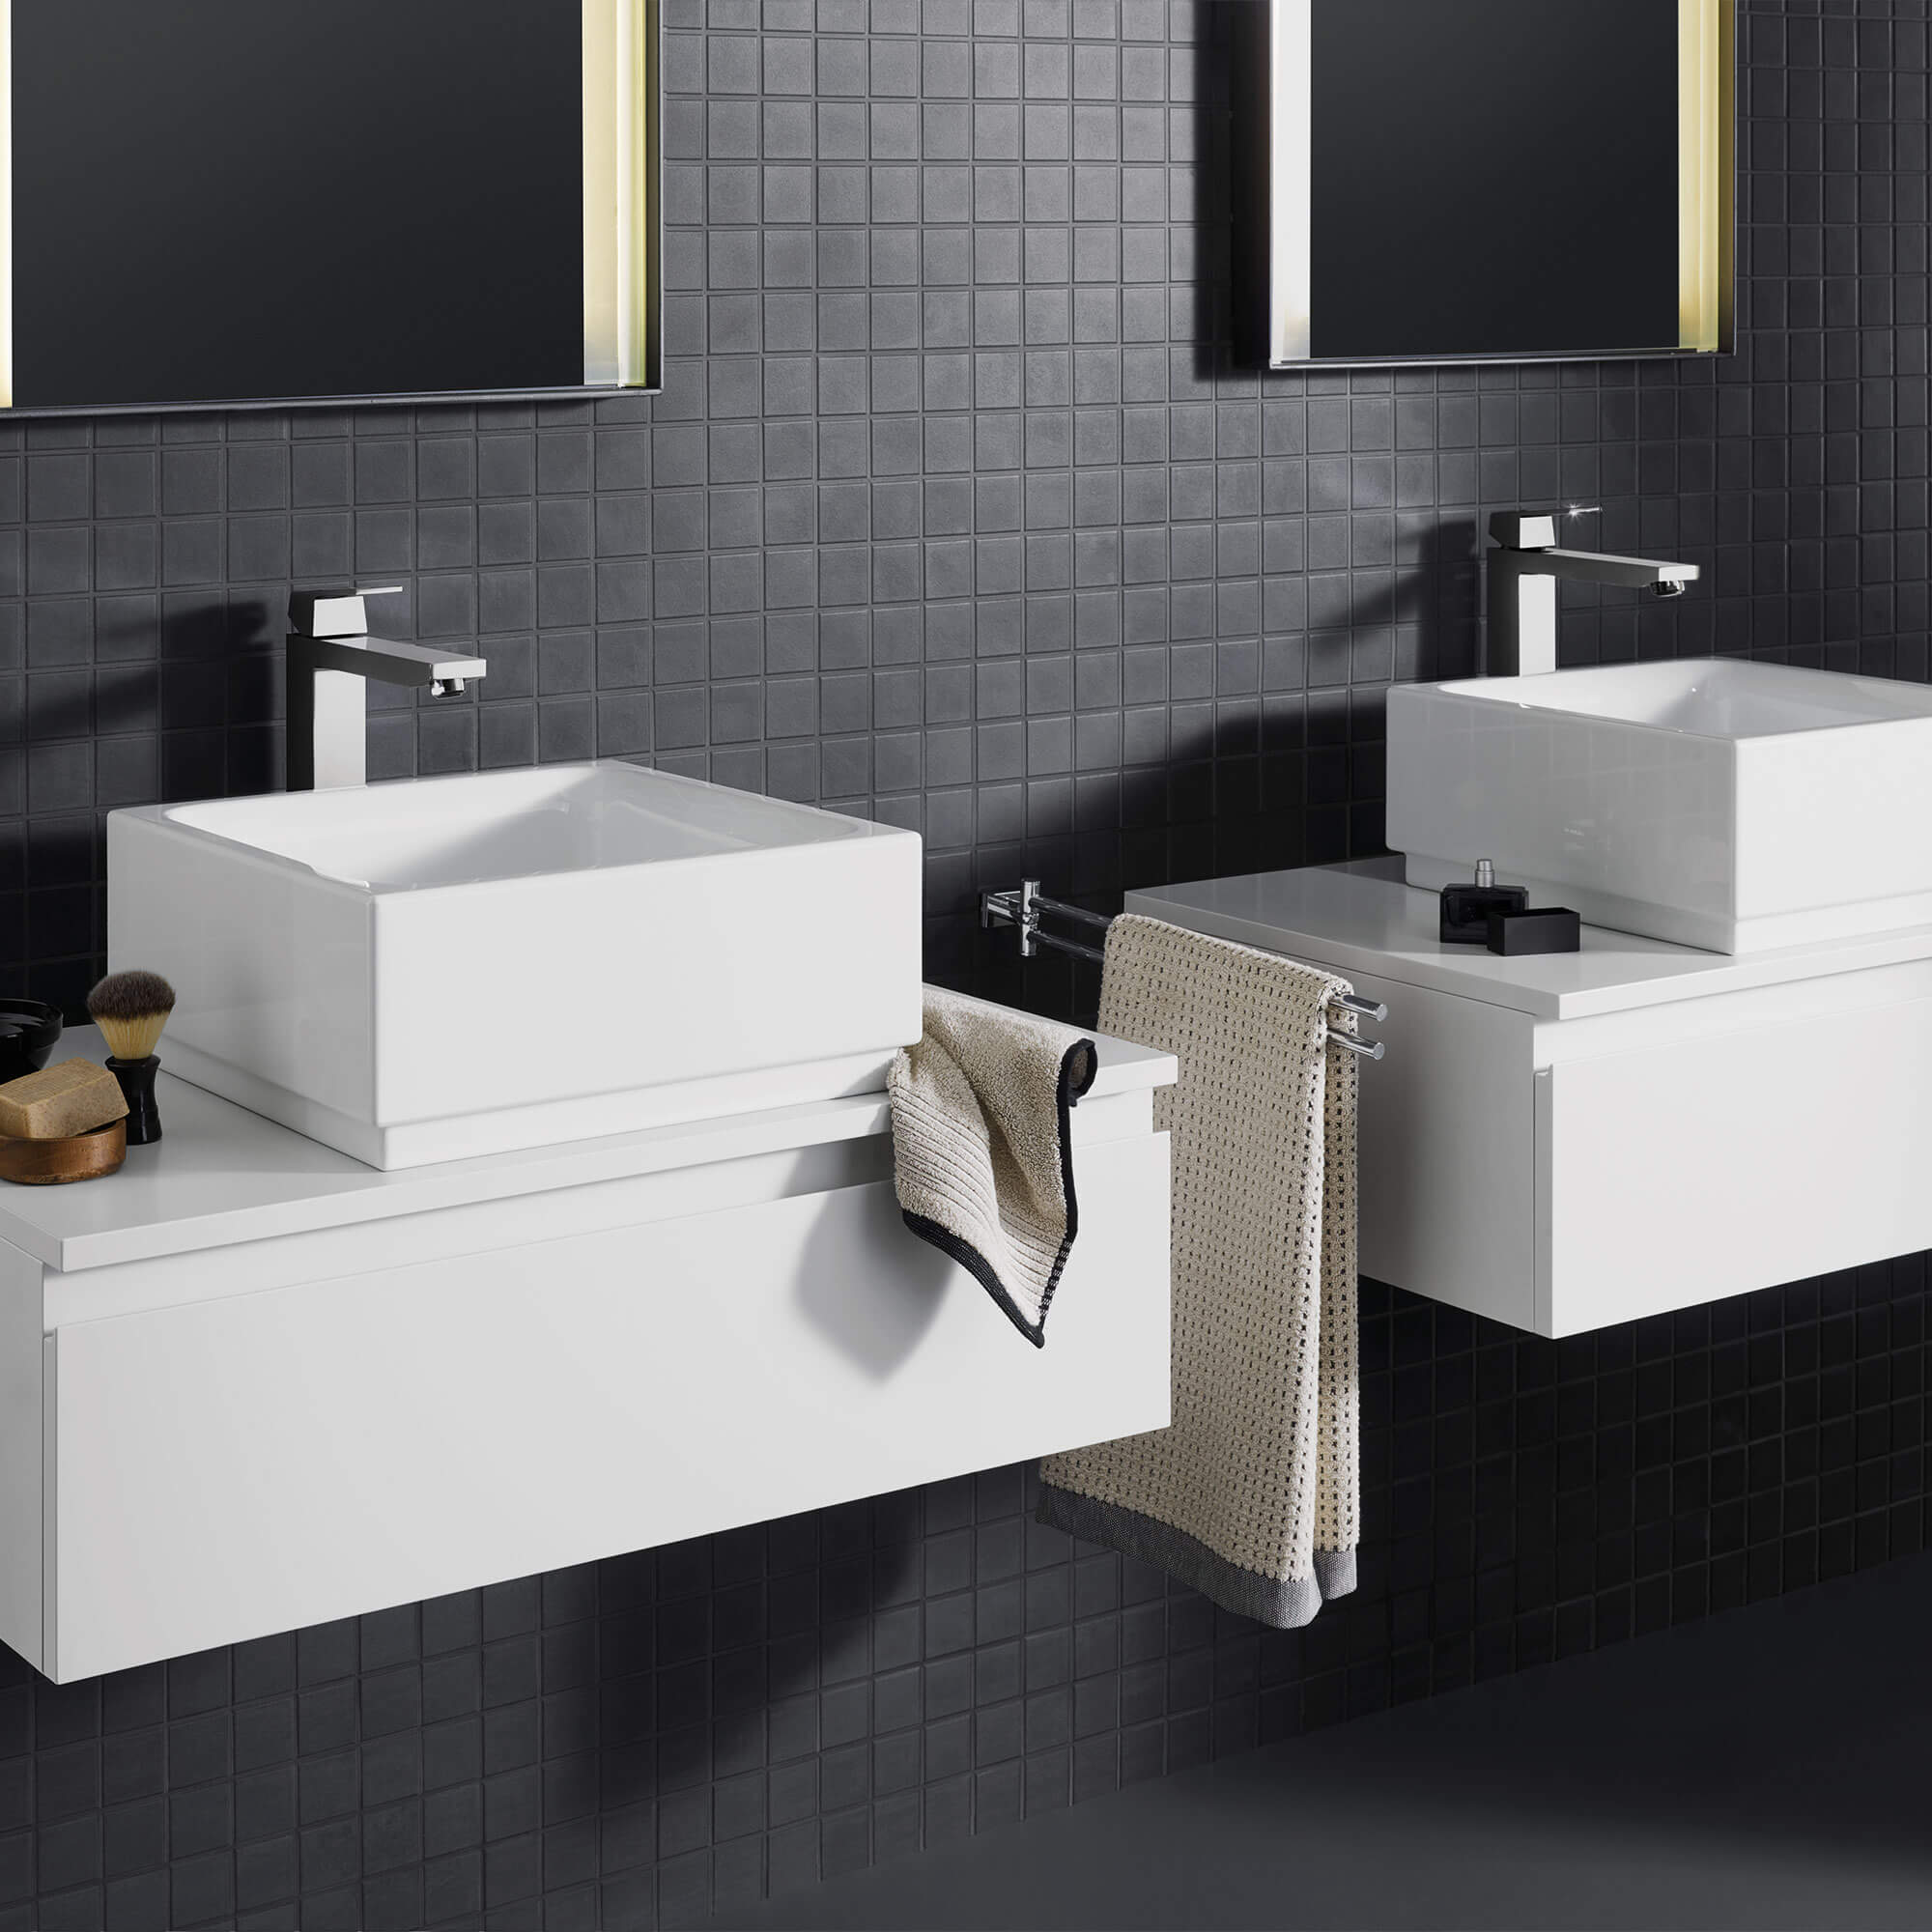 Eurocube faucet in a bathroom with black tiled walls.